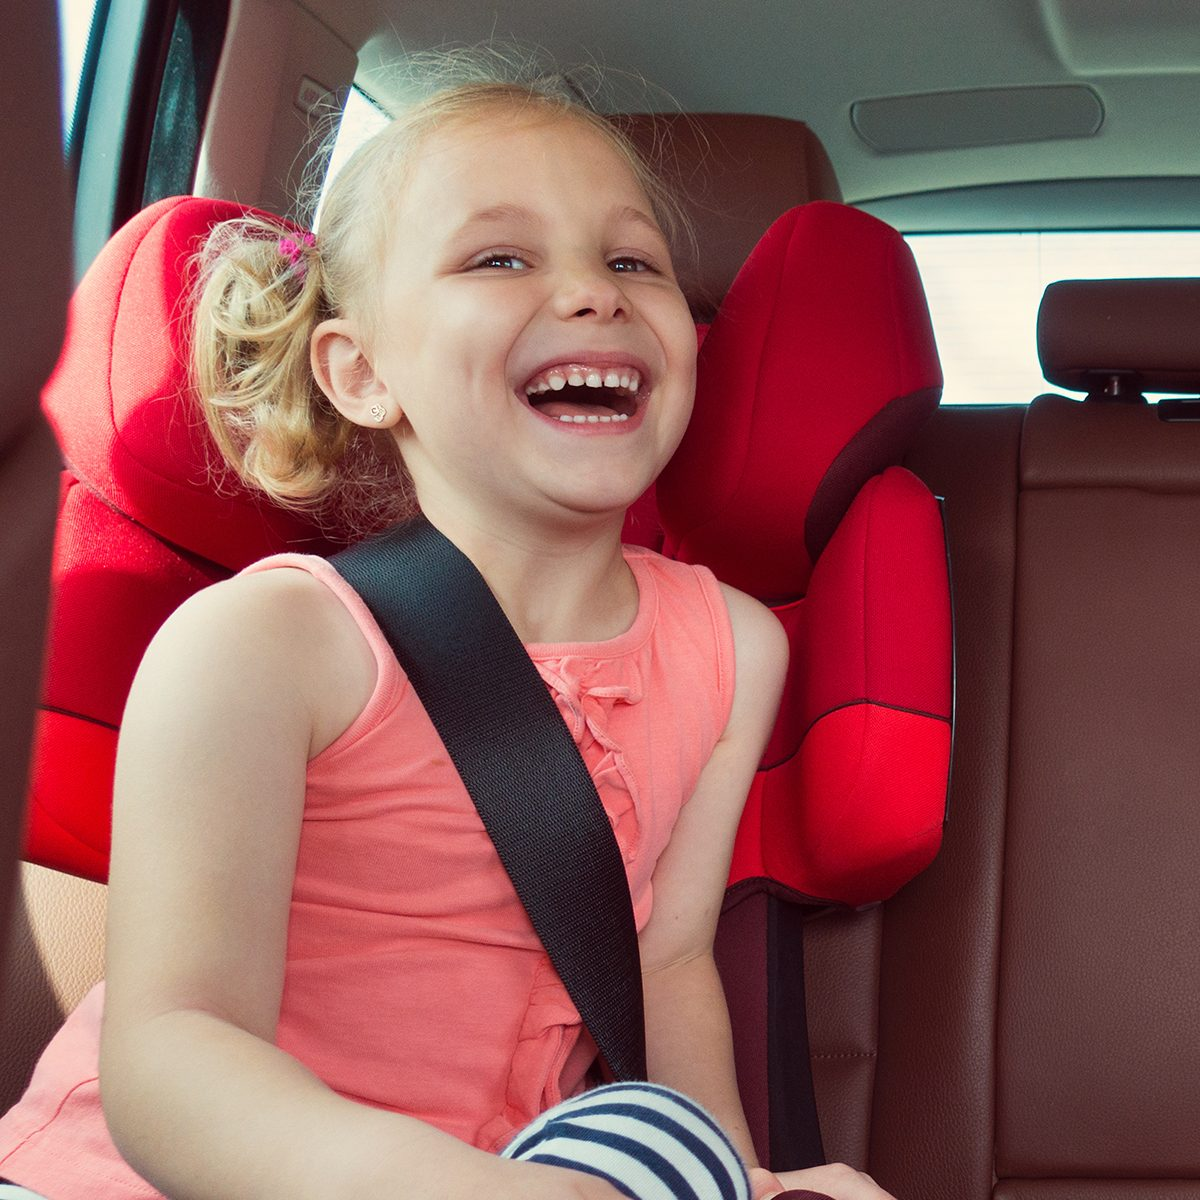 Adorable kid laughing in their car seat